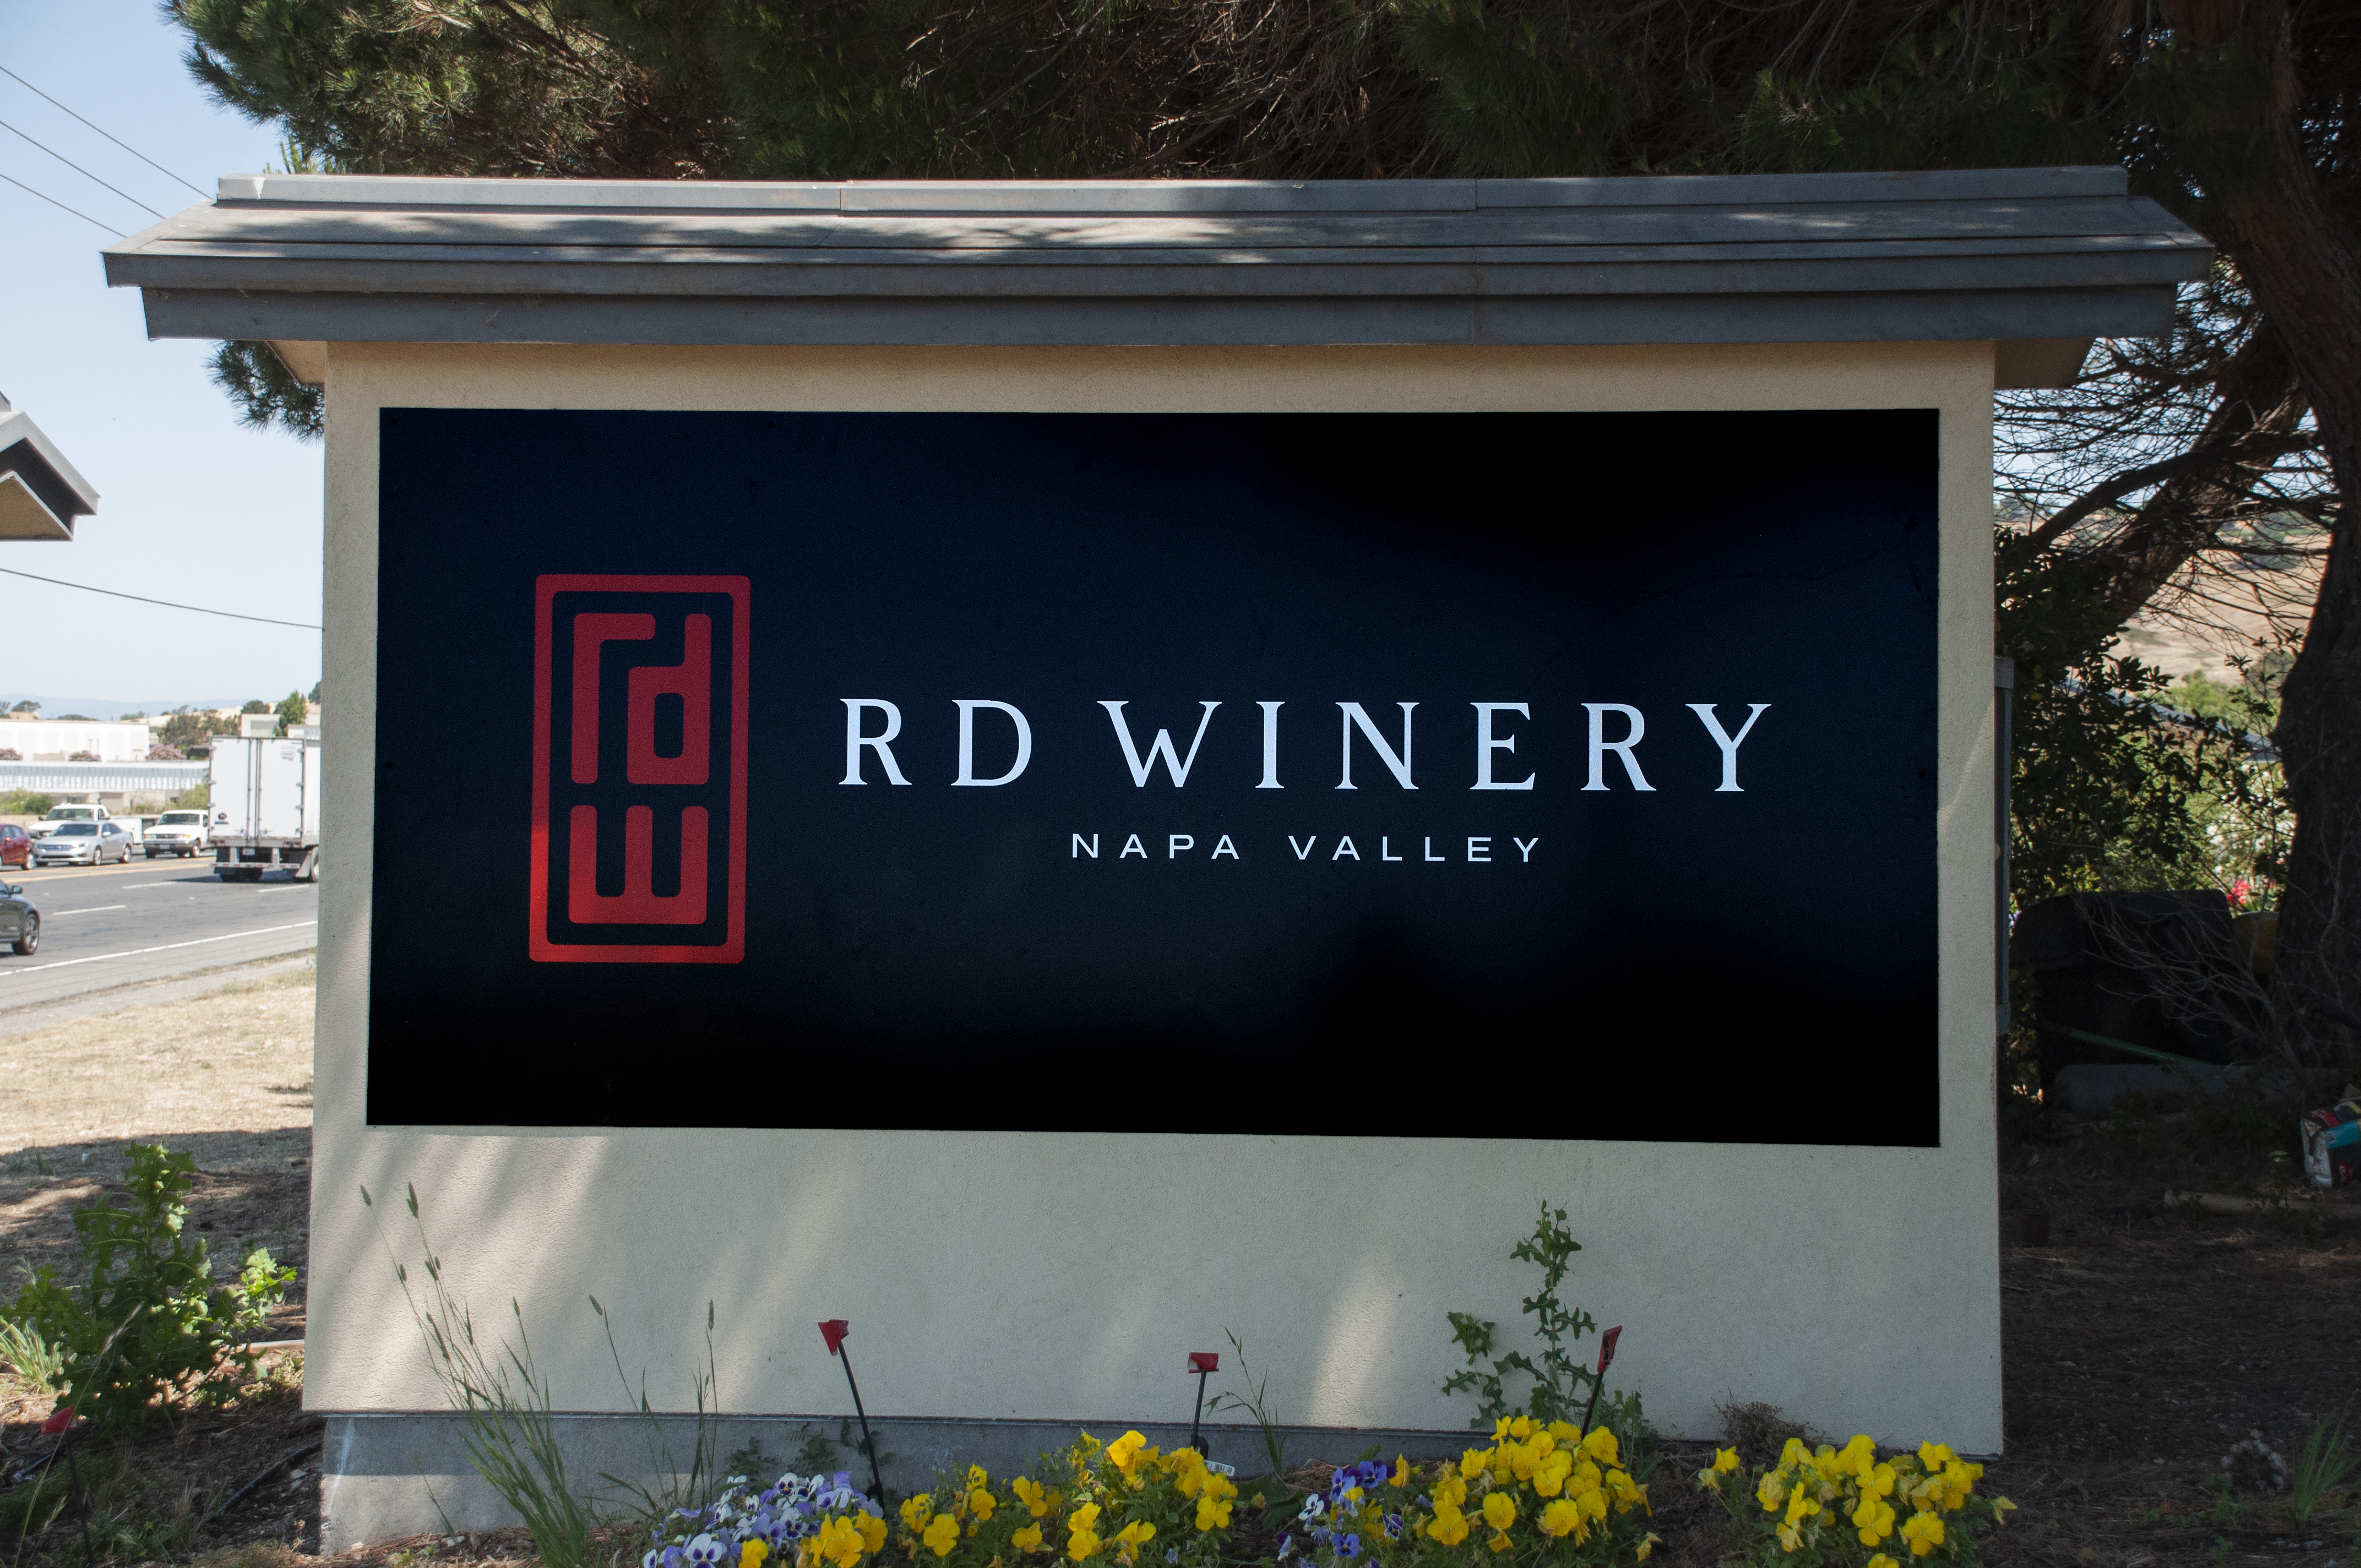 RD Winery Highway Sign Design